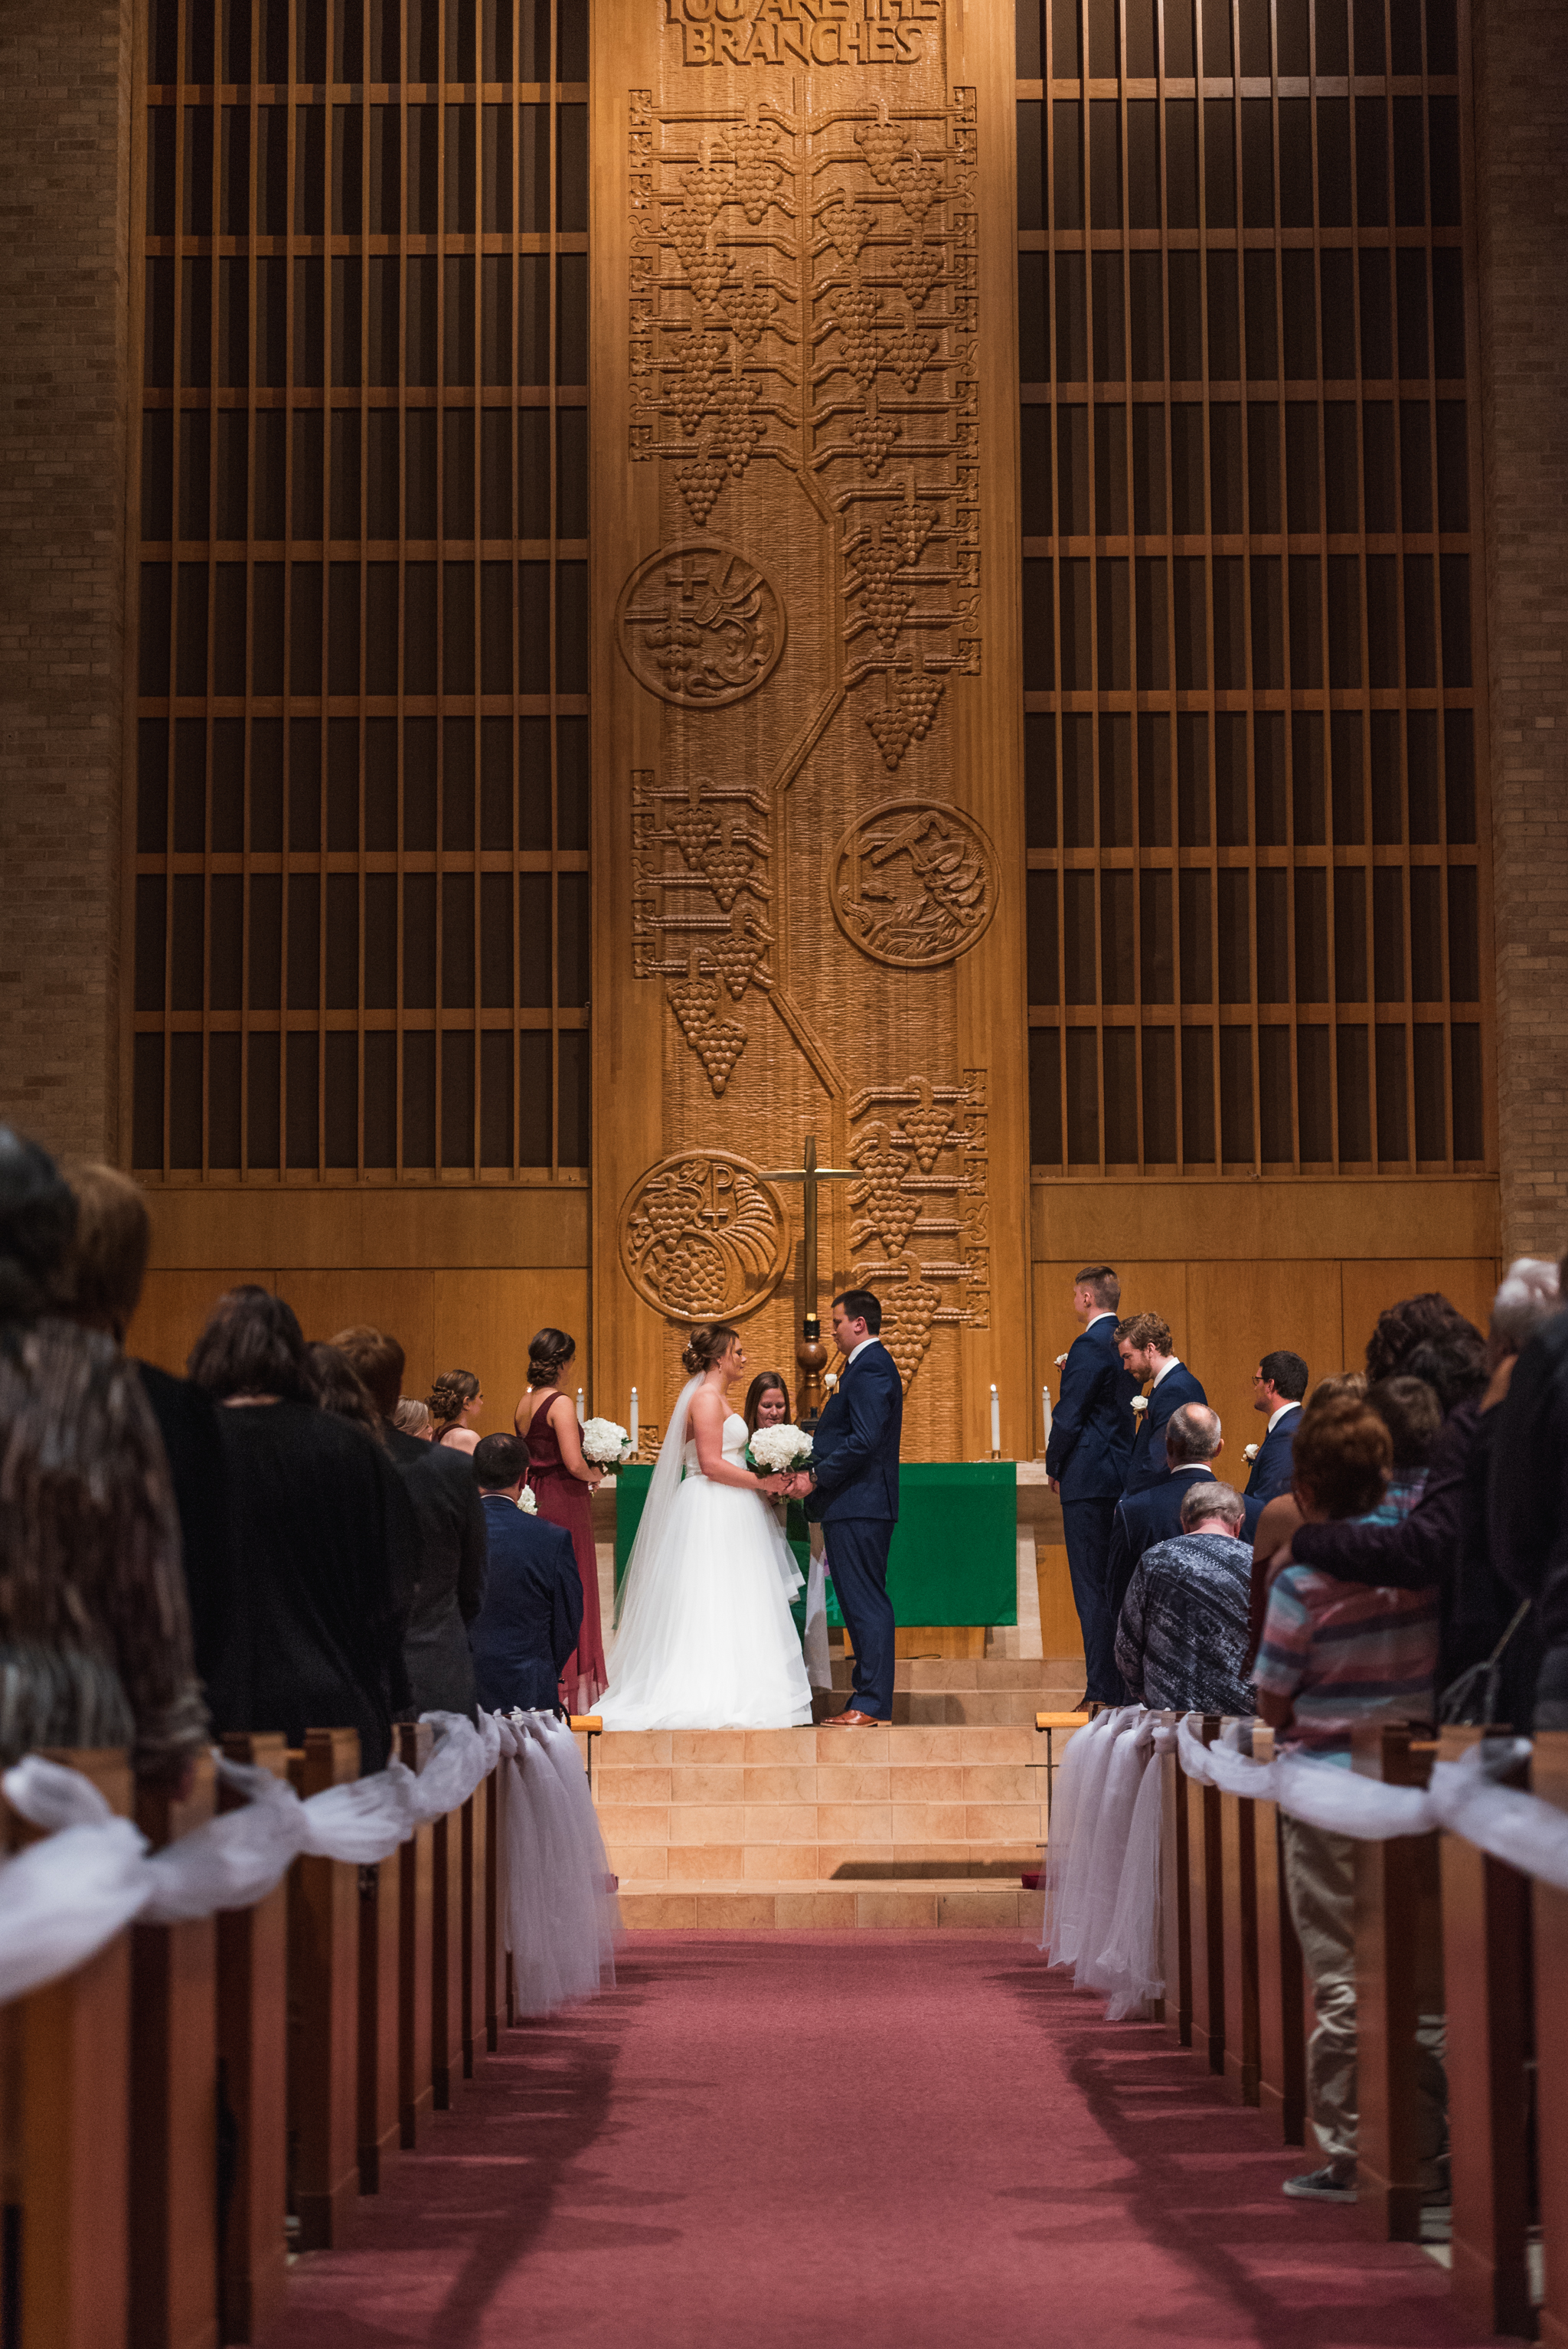 Midwest Fall Wedding | Fargo ND Wedding Photographer by Chelsea Joy Photography